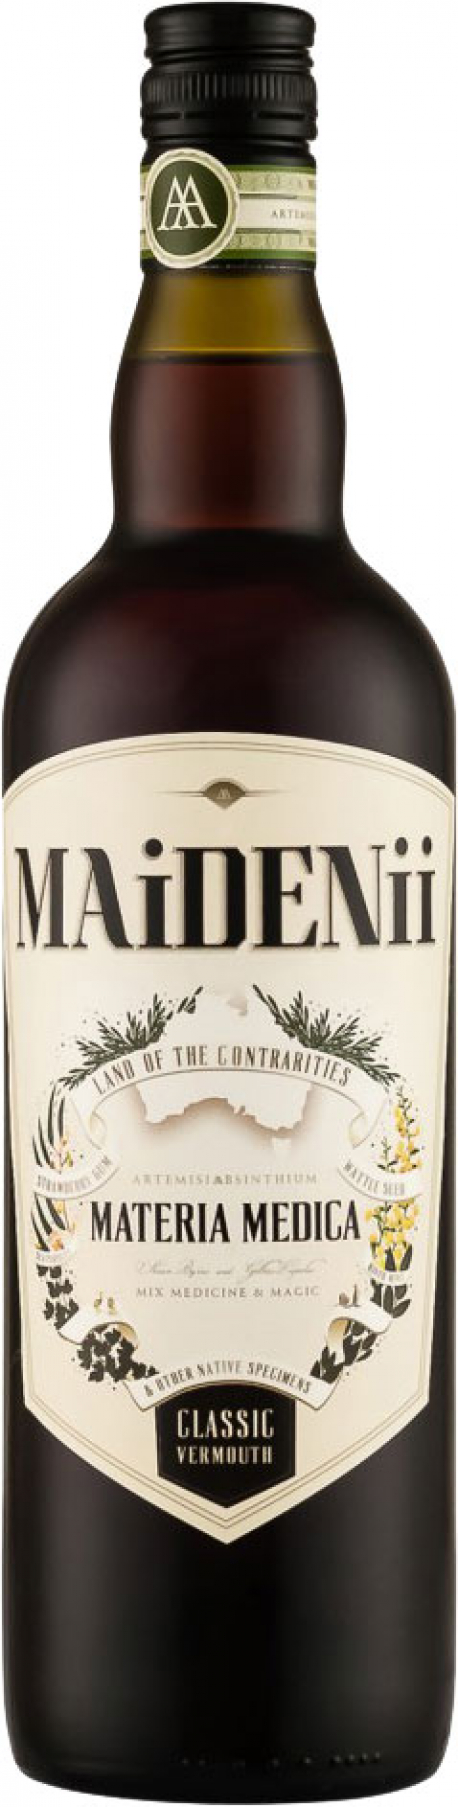 Image of Maidenii - Classic Vermouth